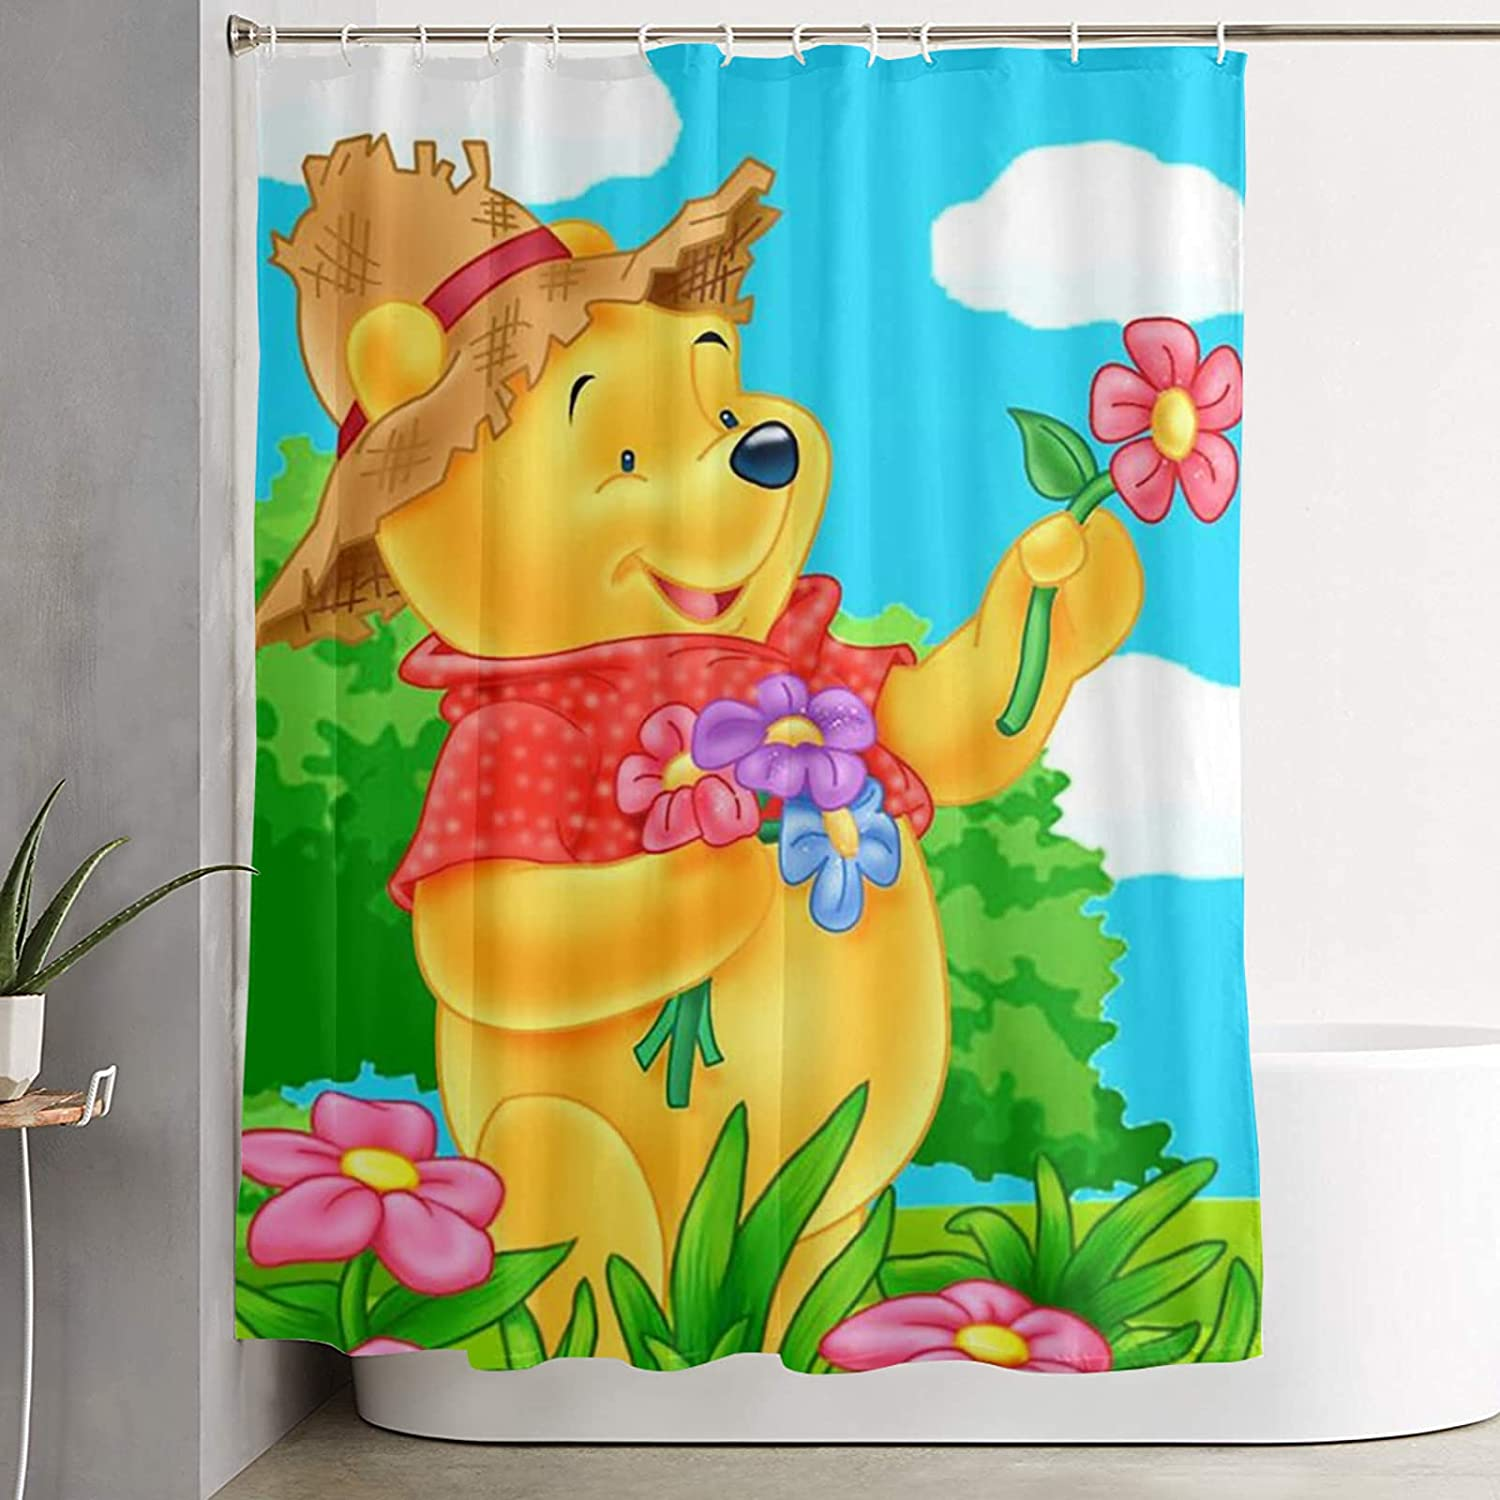 Winnie The Pooh Shower Large special price !! Curtain Fabricpolyester C Decor Durable 5% OFF